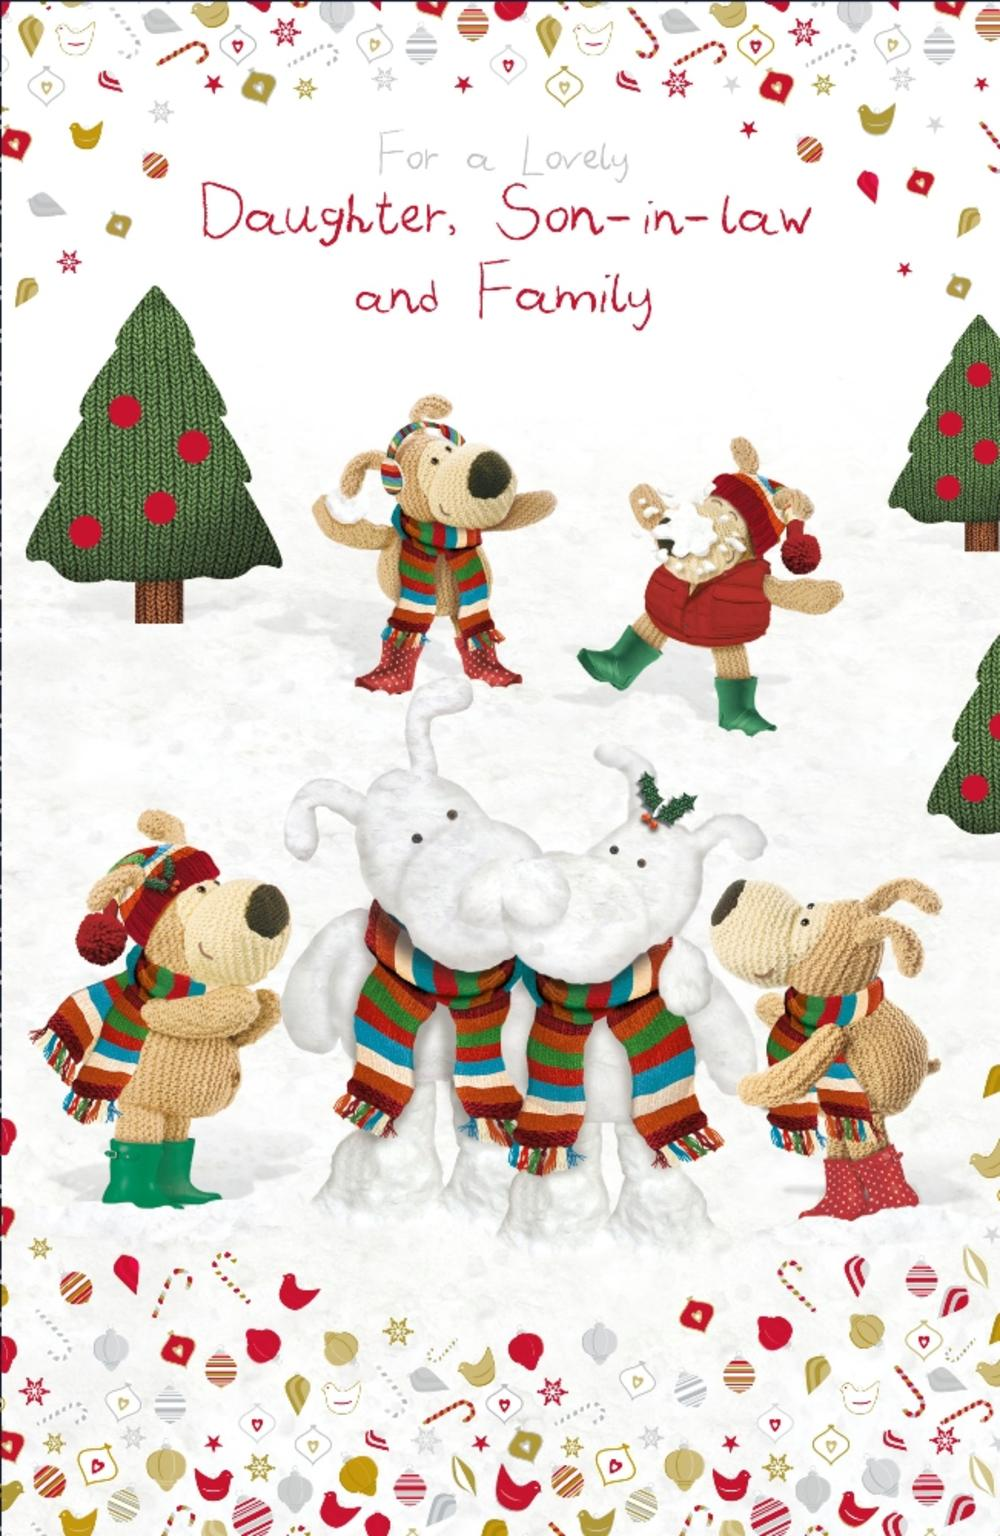 Boofle Daughter Son-In-Law & Family Christmas Card